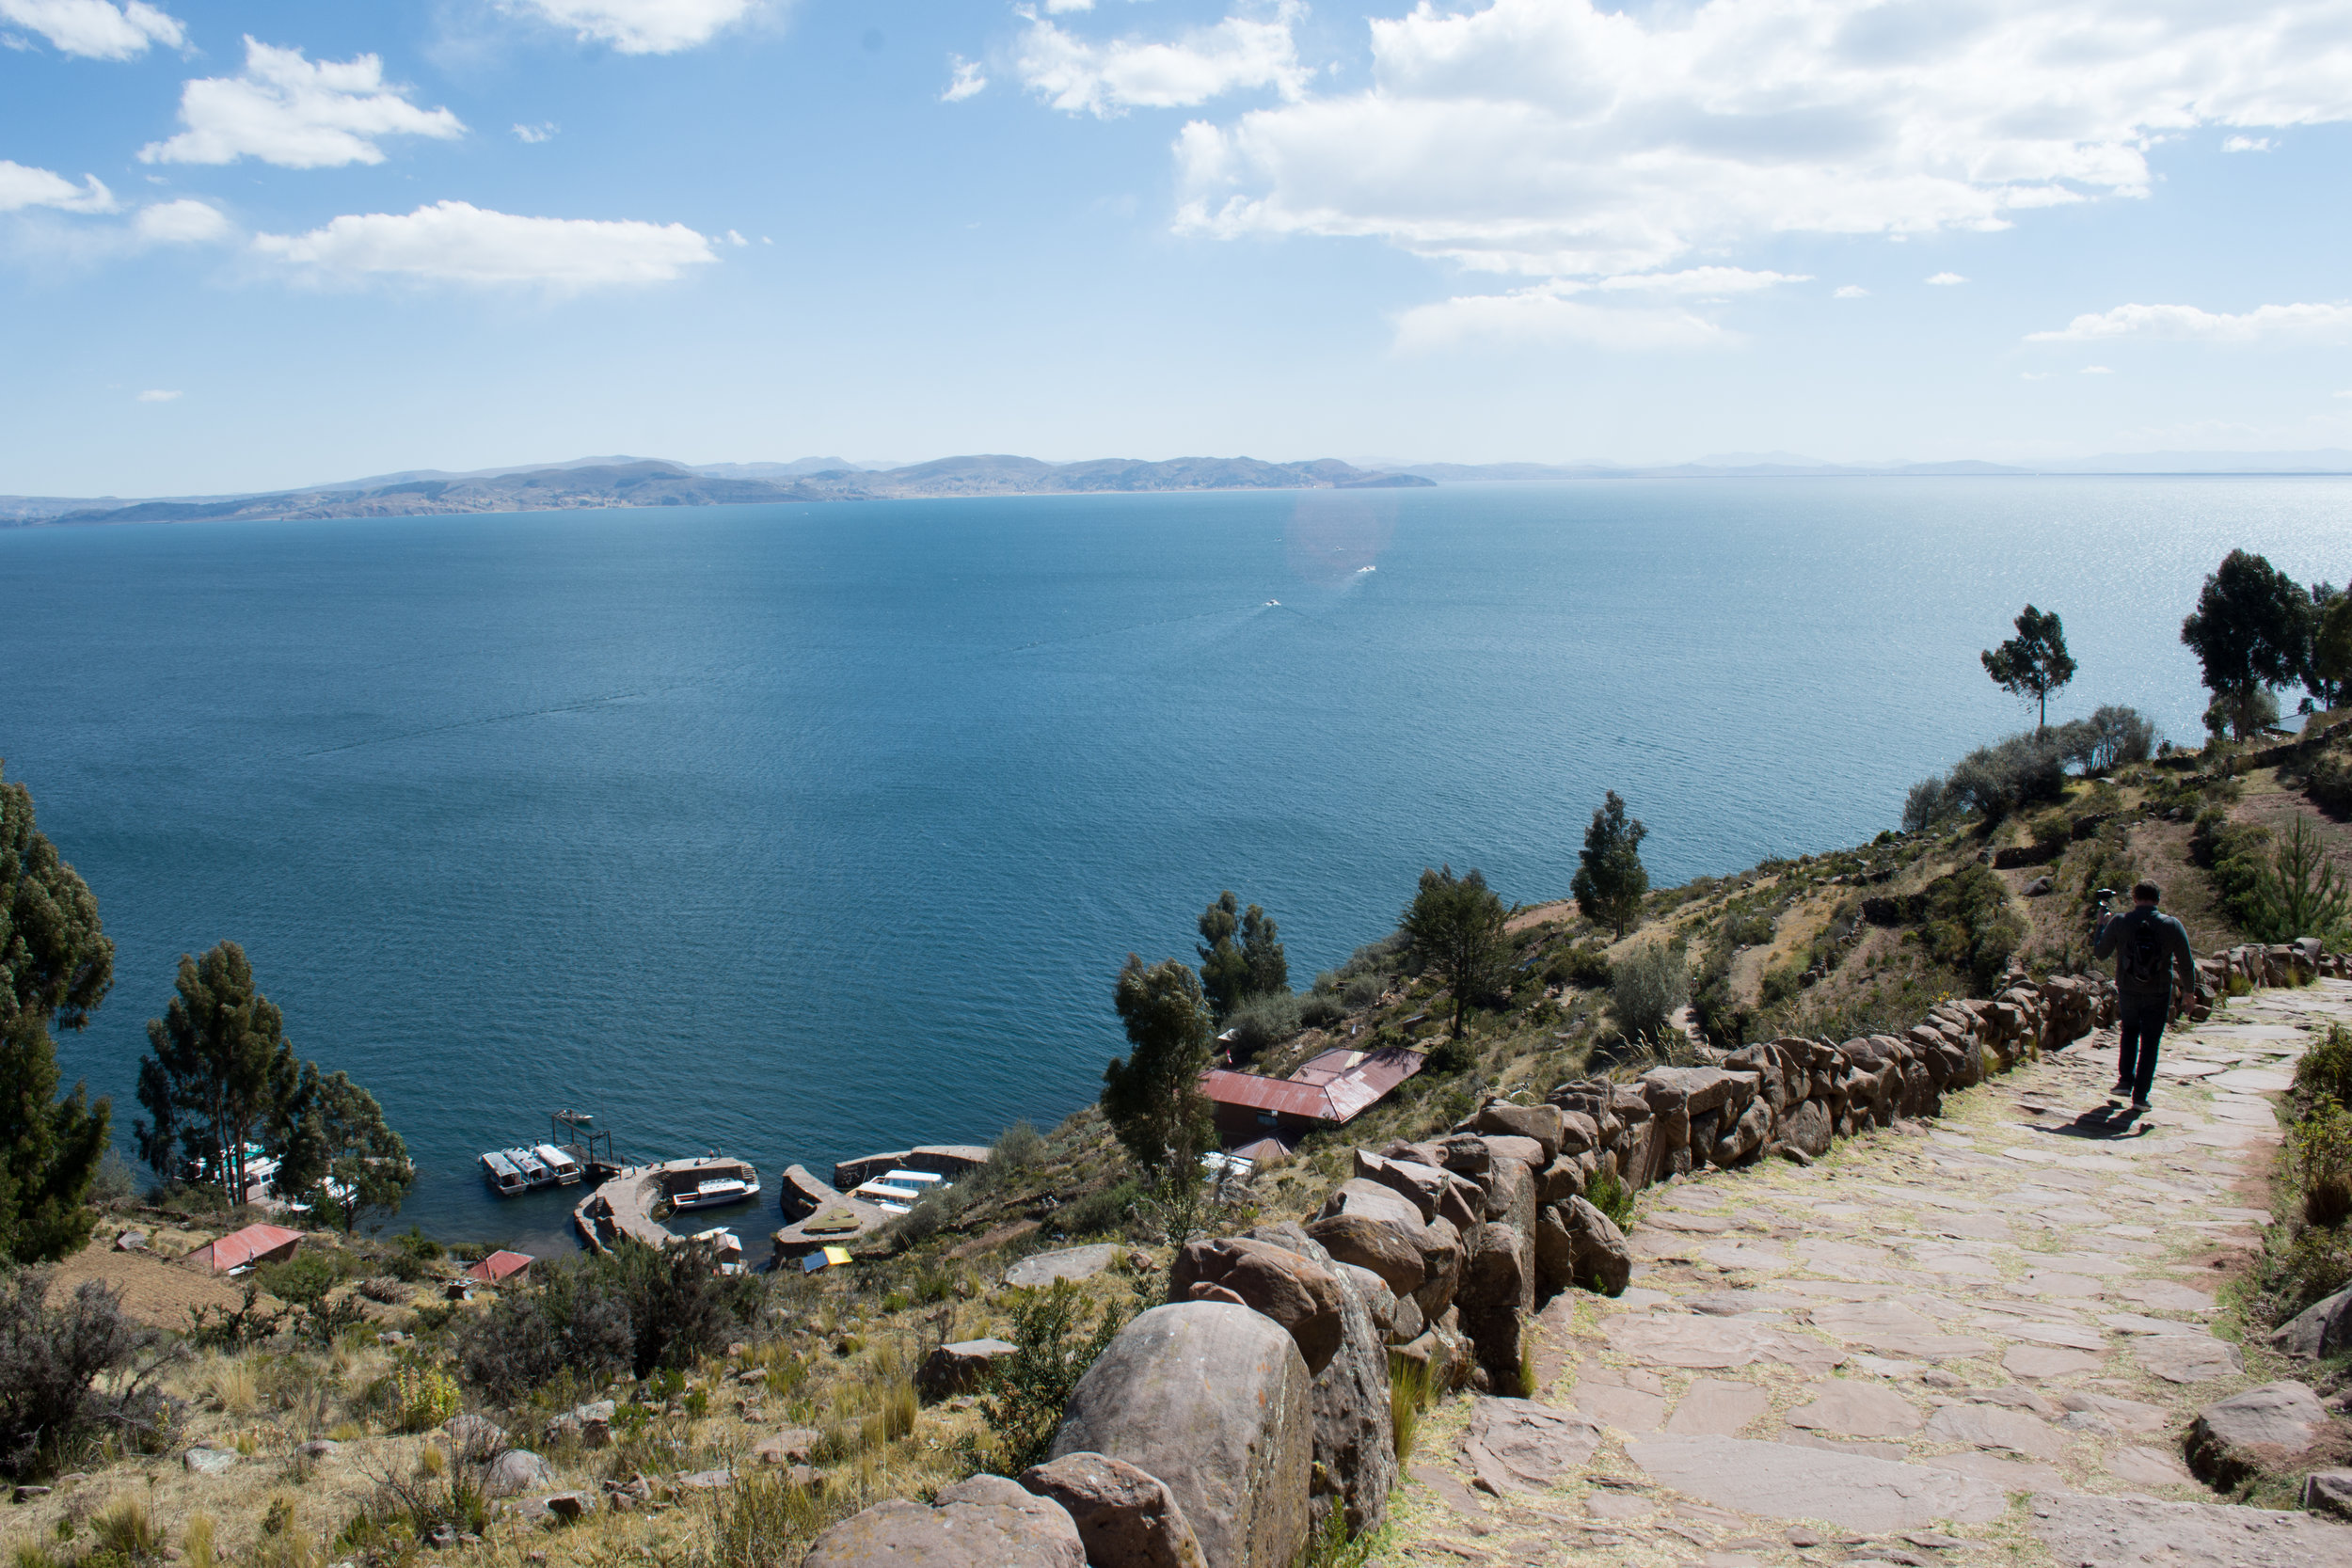 Walking down from Taquile Island